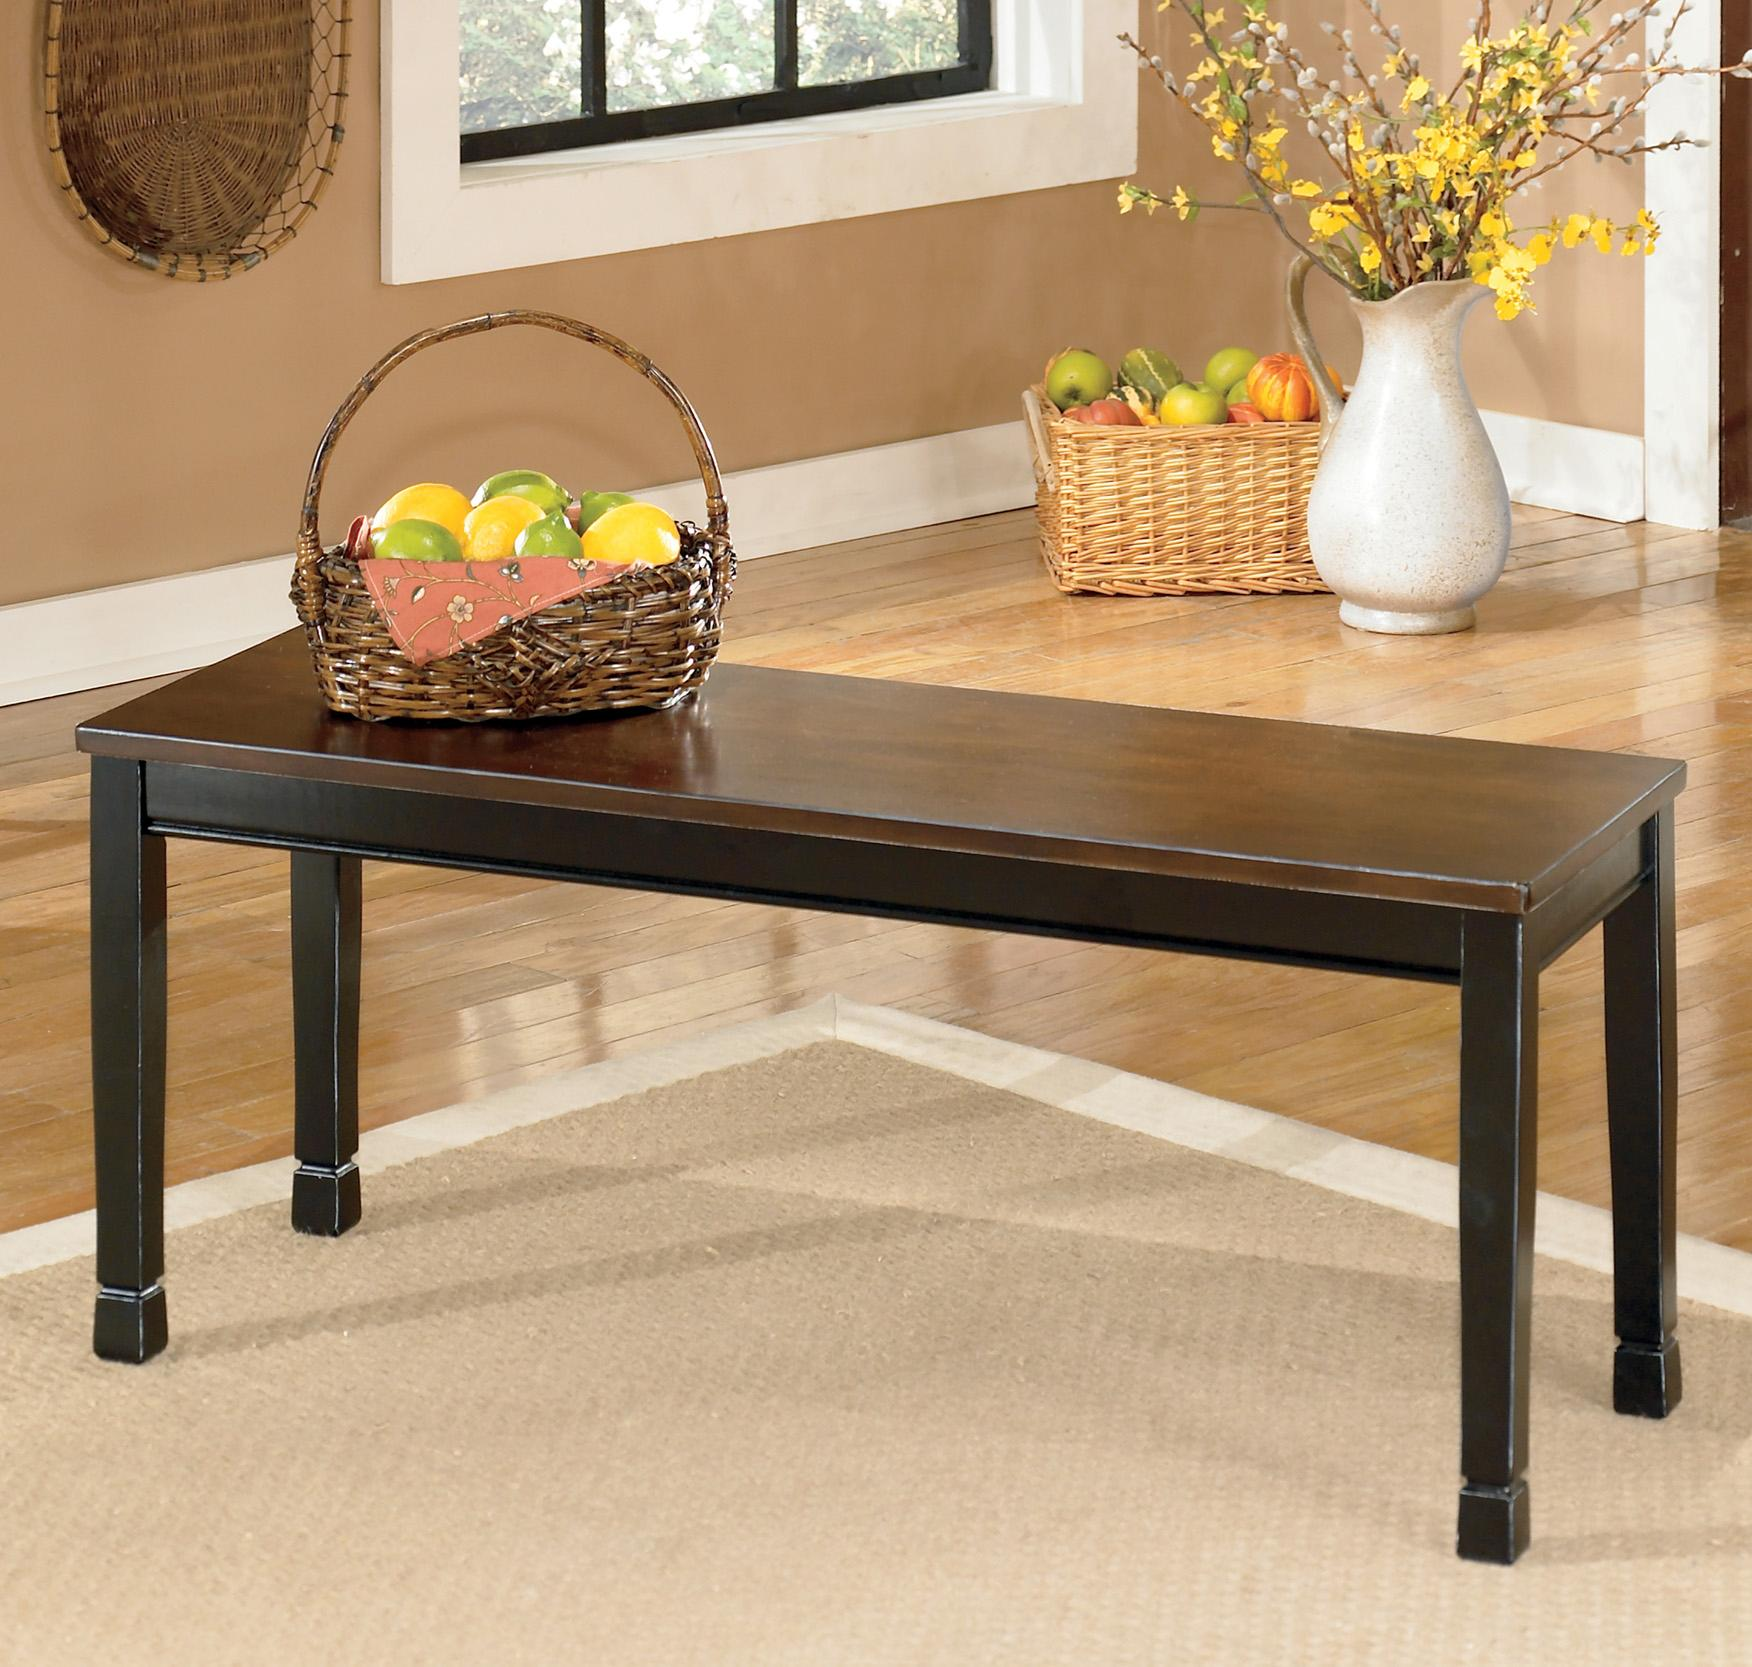 Owingsville Large Dining Room Bench by Signature Design by Ashley at Northeast Factory Direct